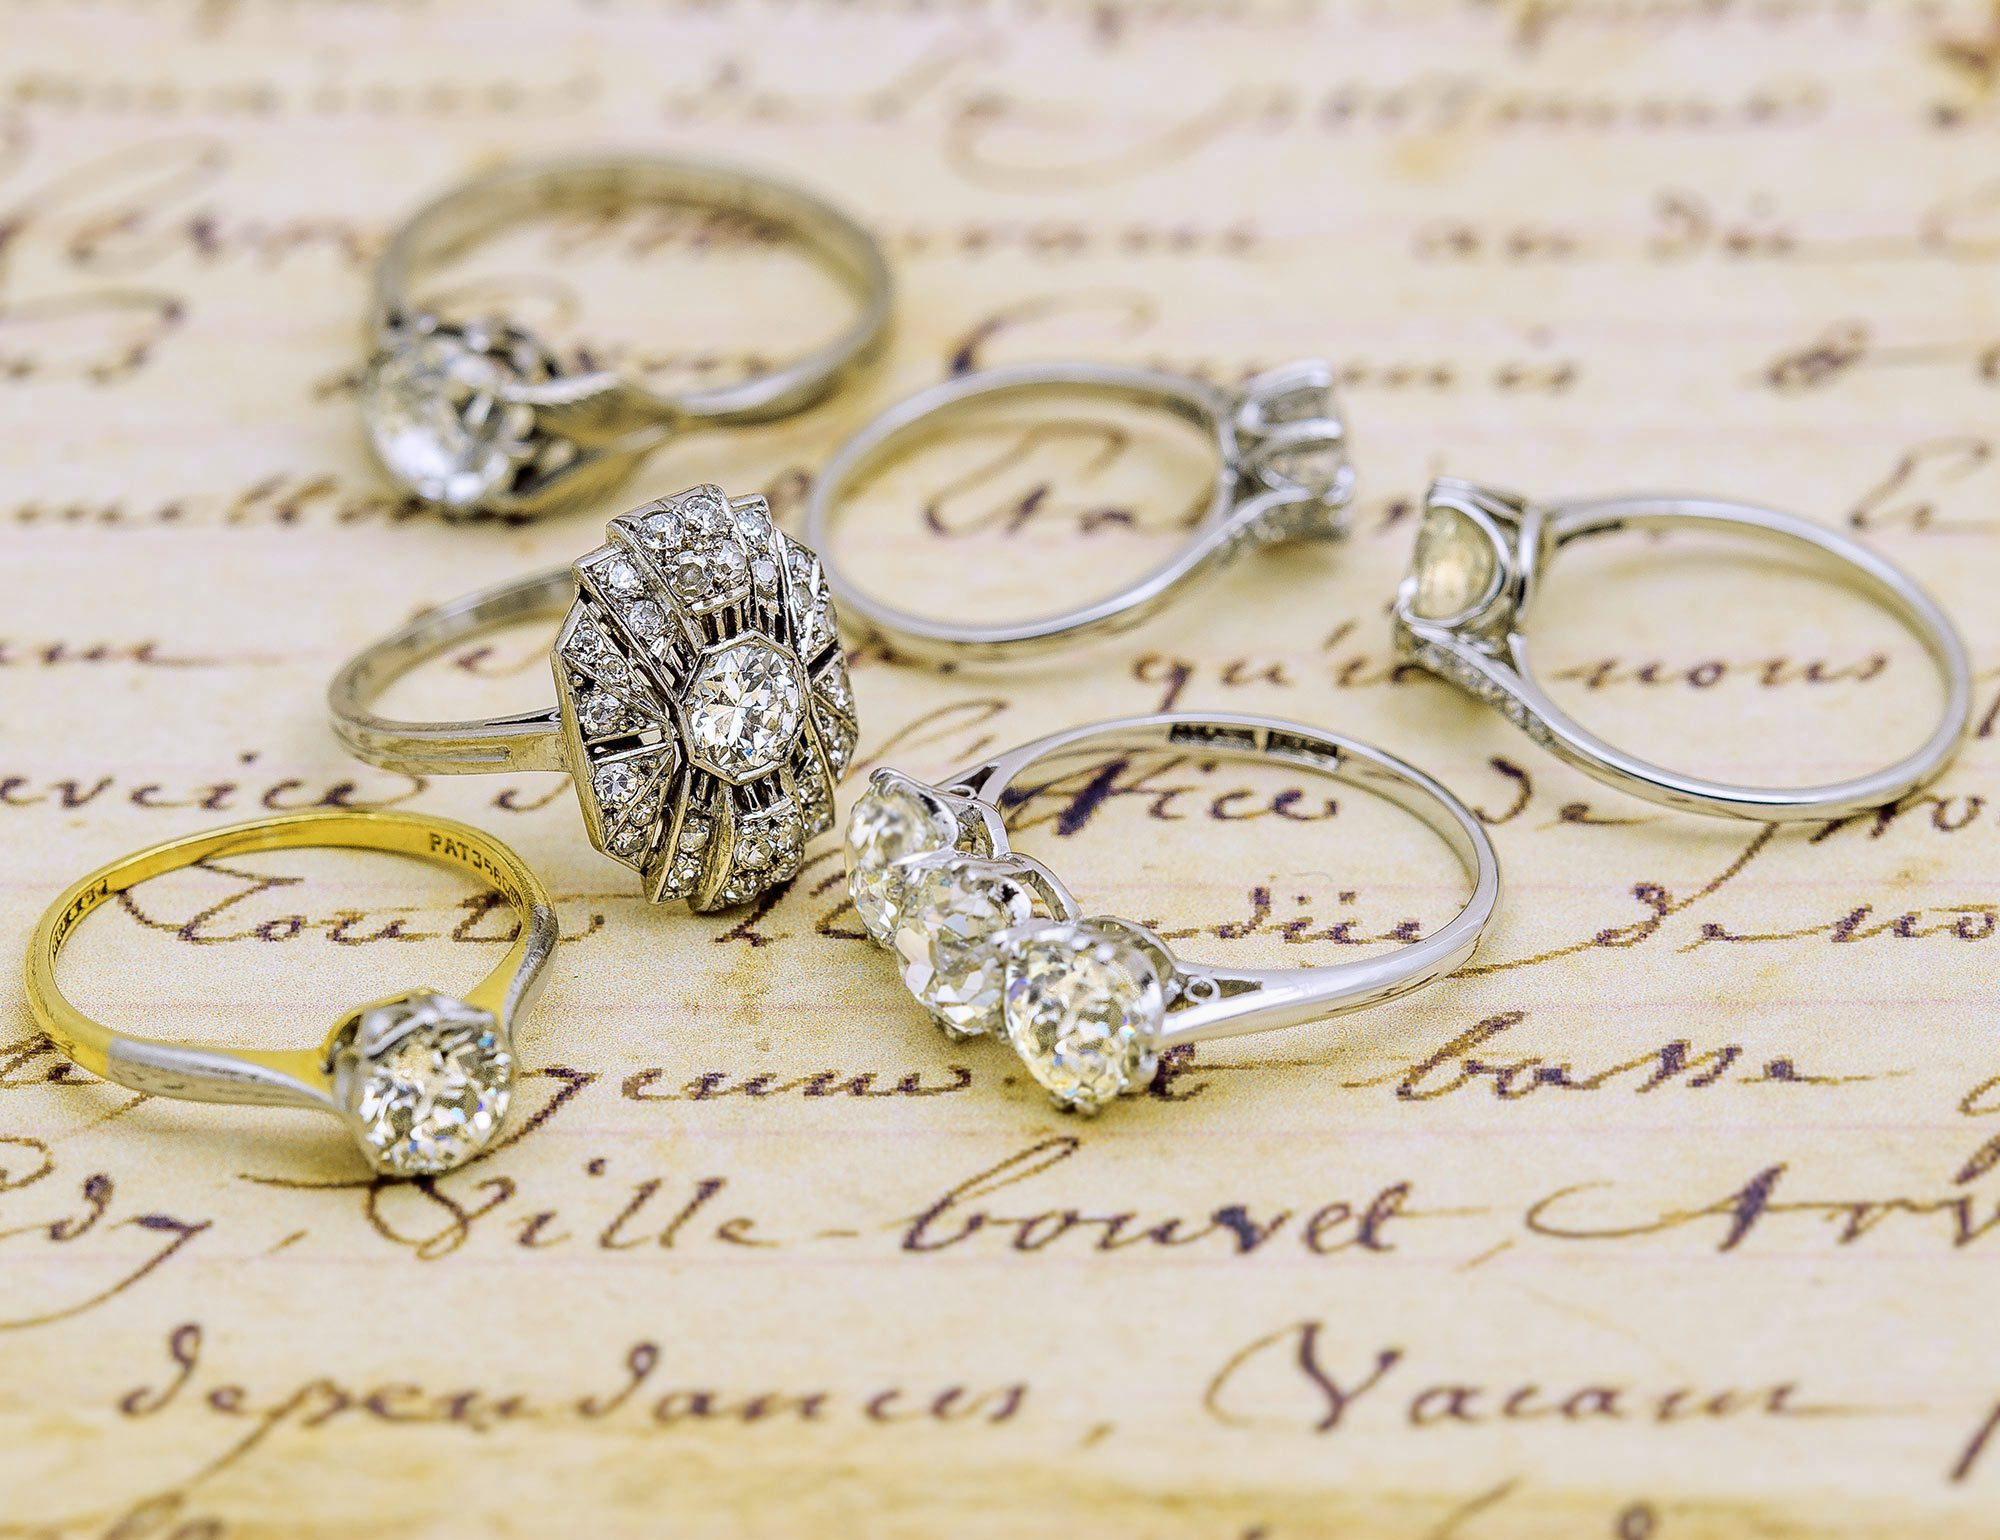 Shop for Georgian, Victorian, Edwardian & Art Deco Engagement Rings